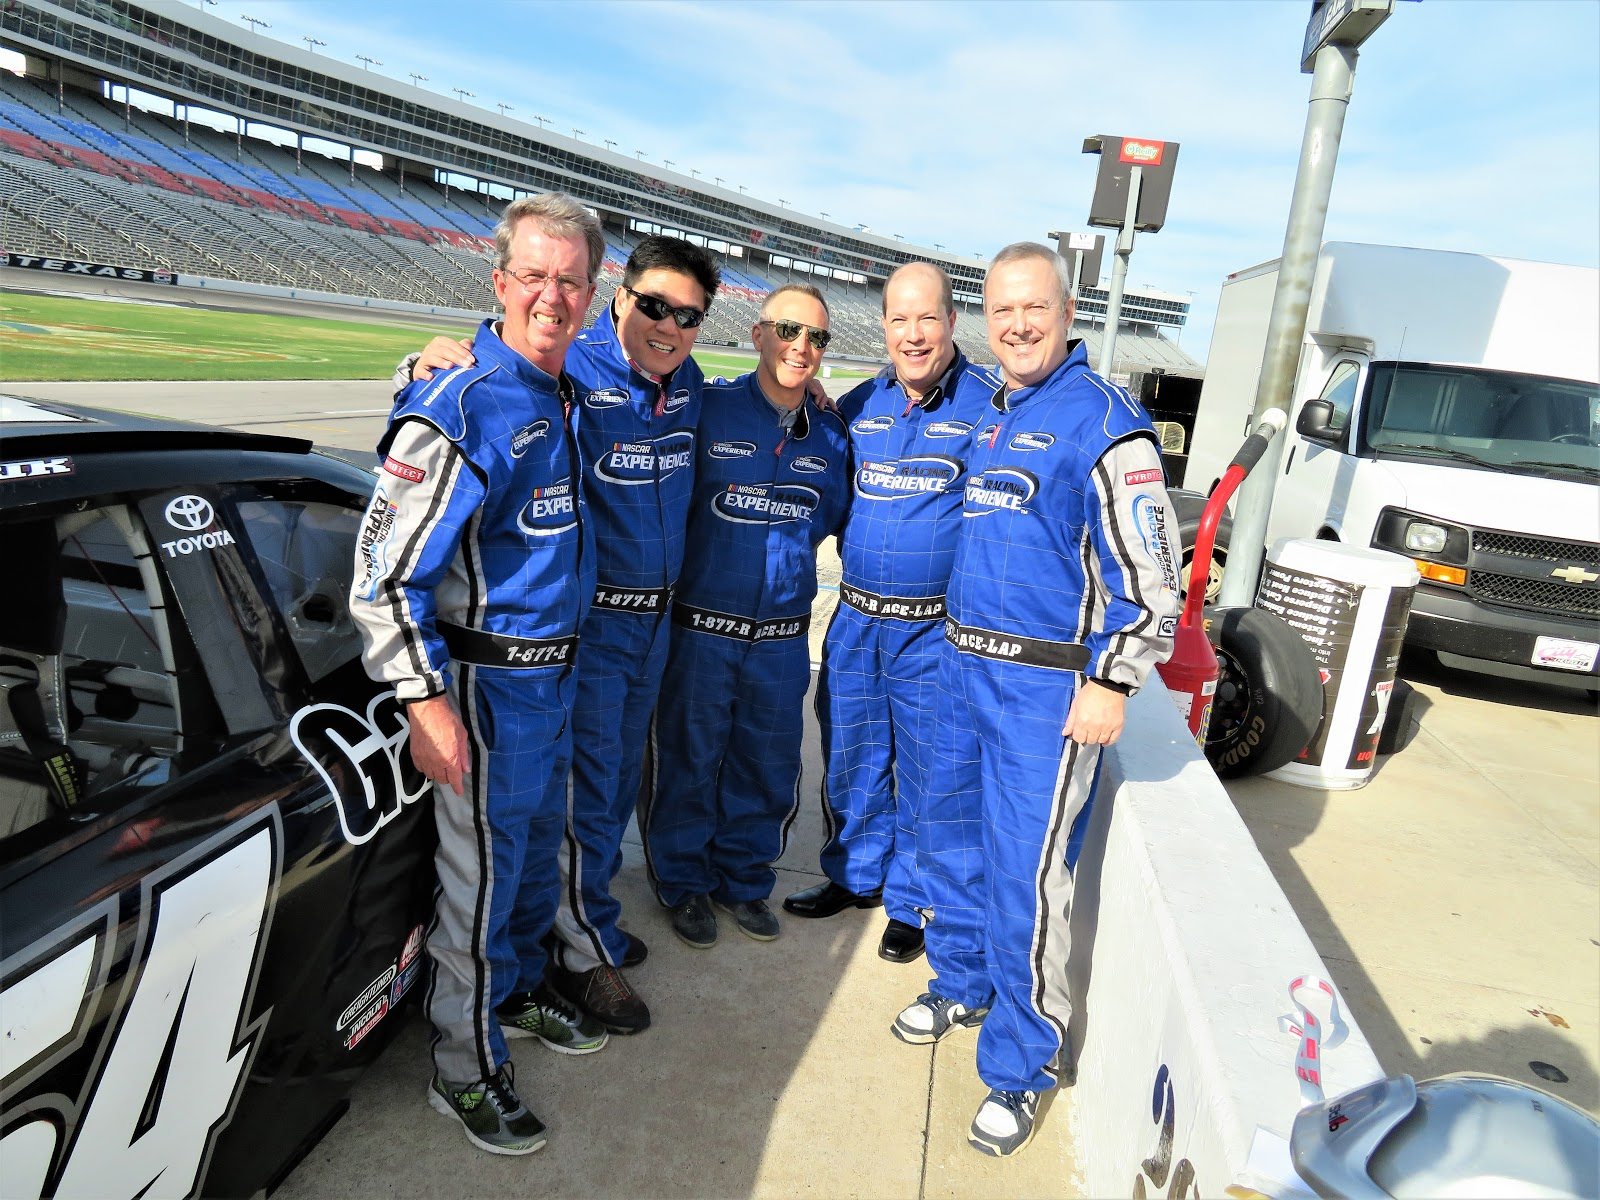 Todd swank for Texas motor speedway driving experience